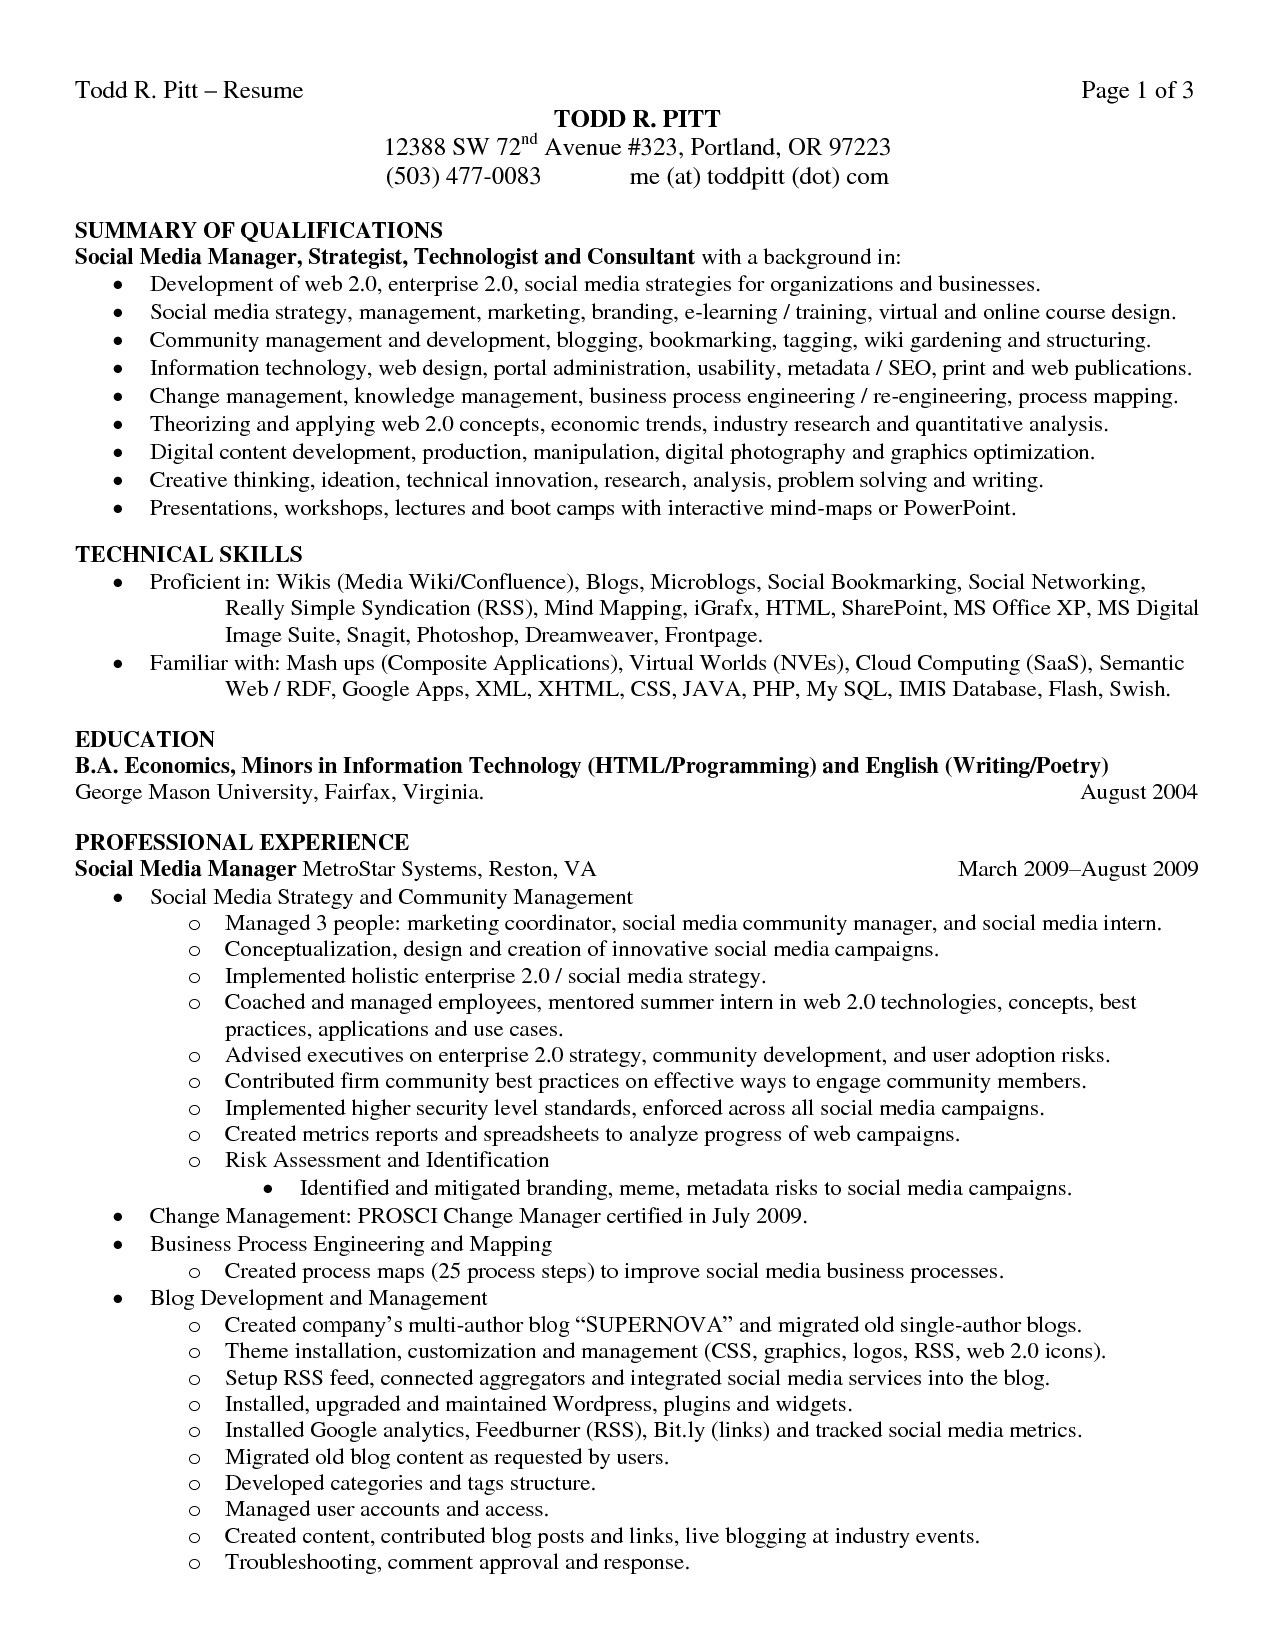 Sample Resume Summary Of Qualifications Technical Skills